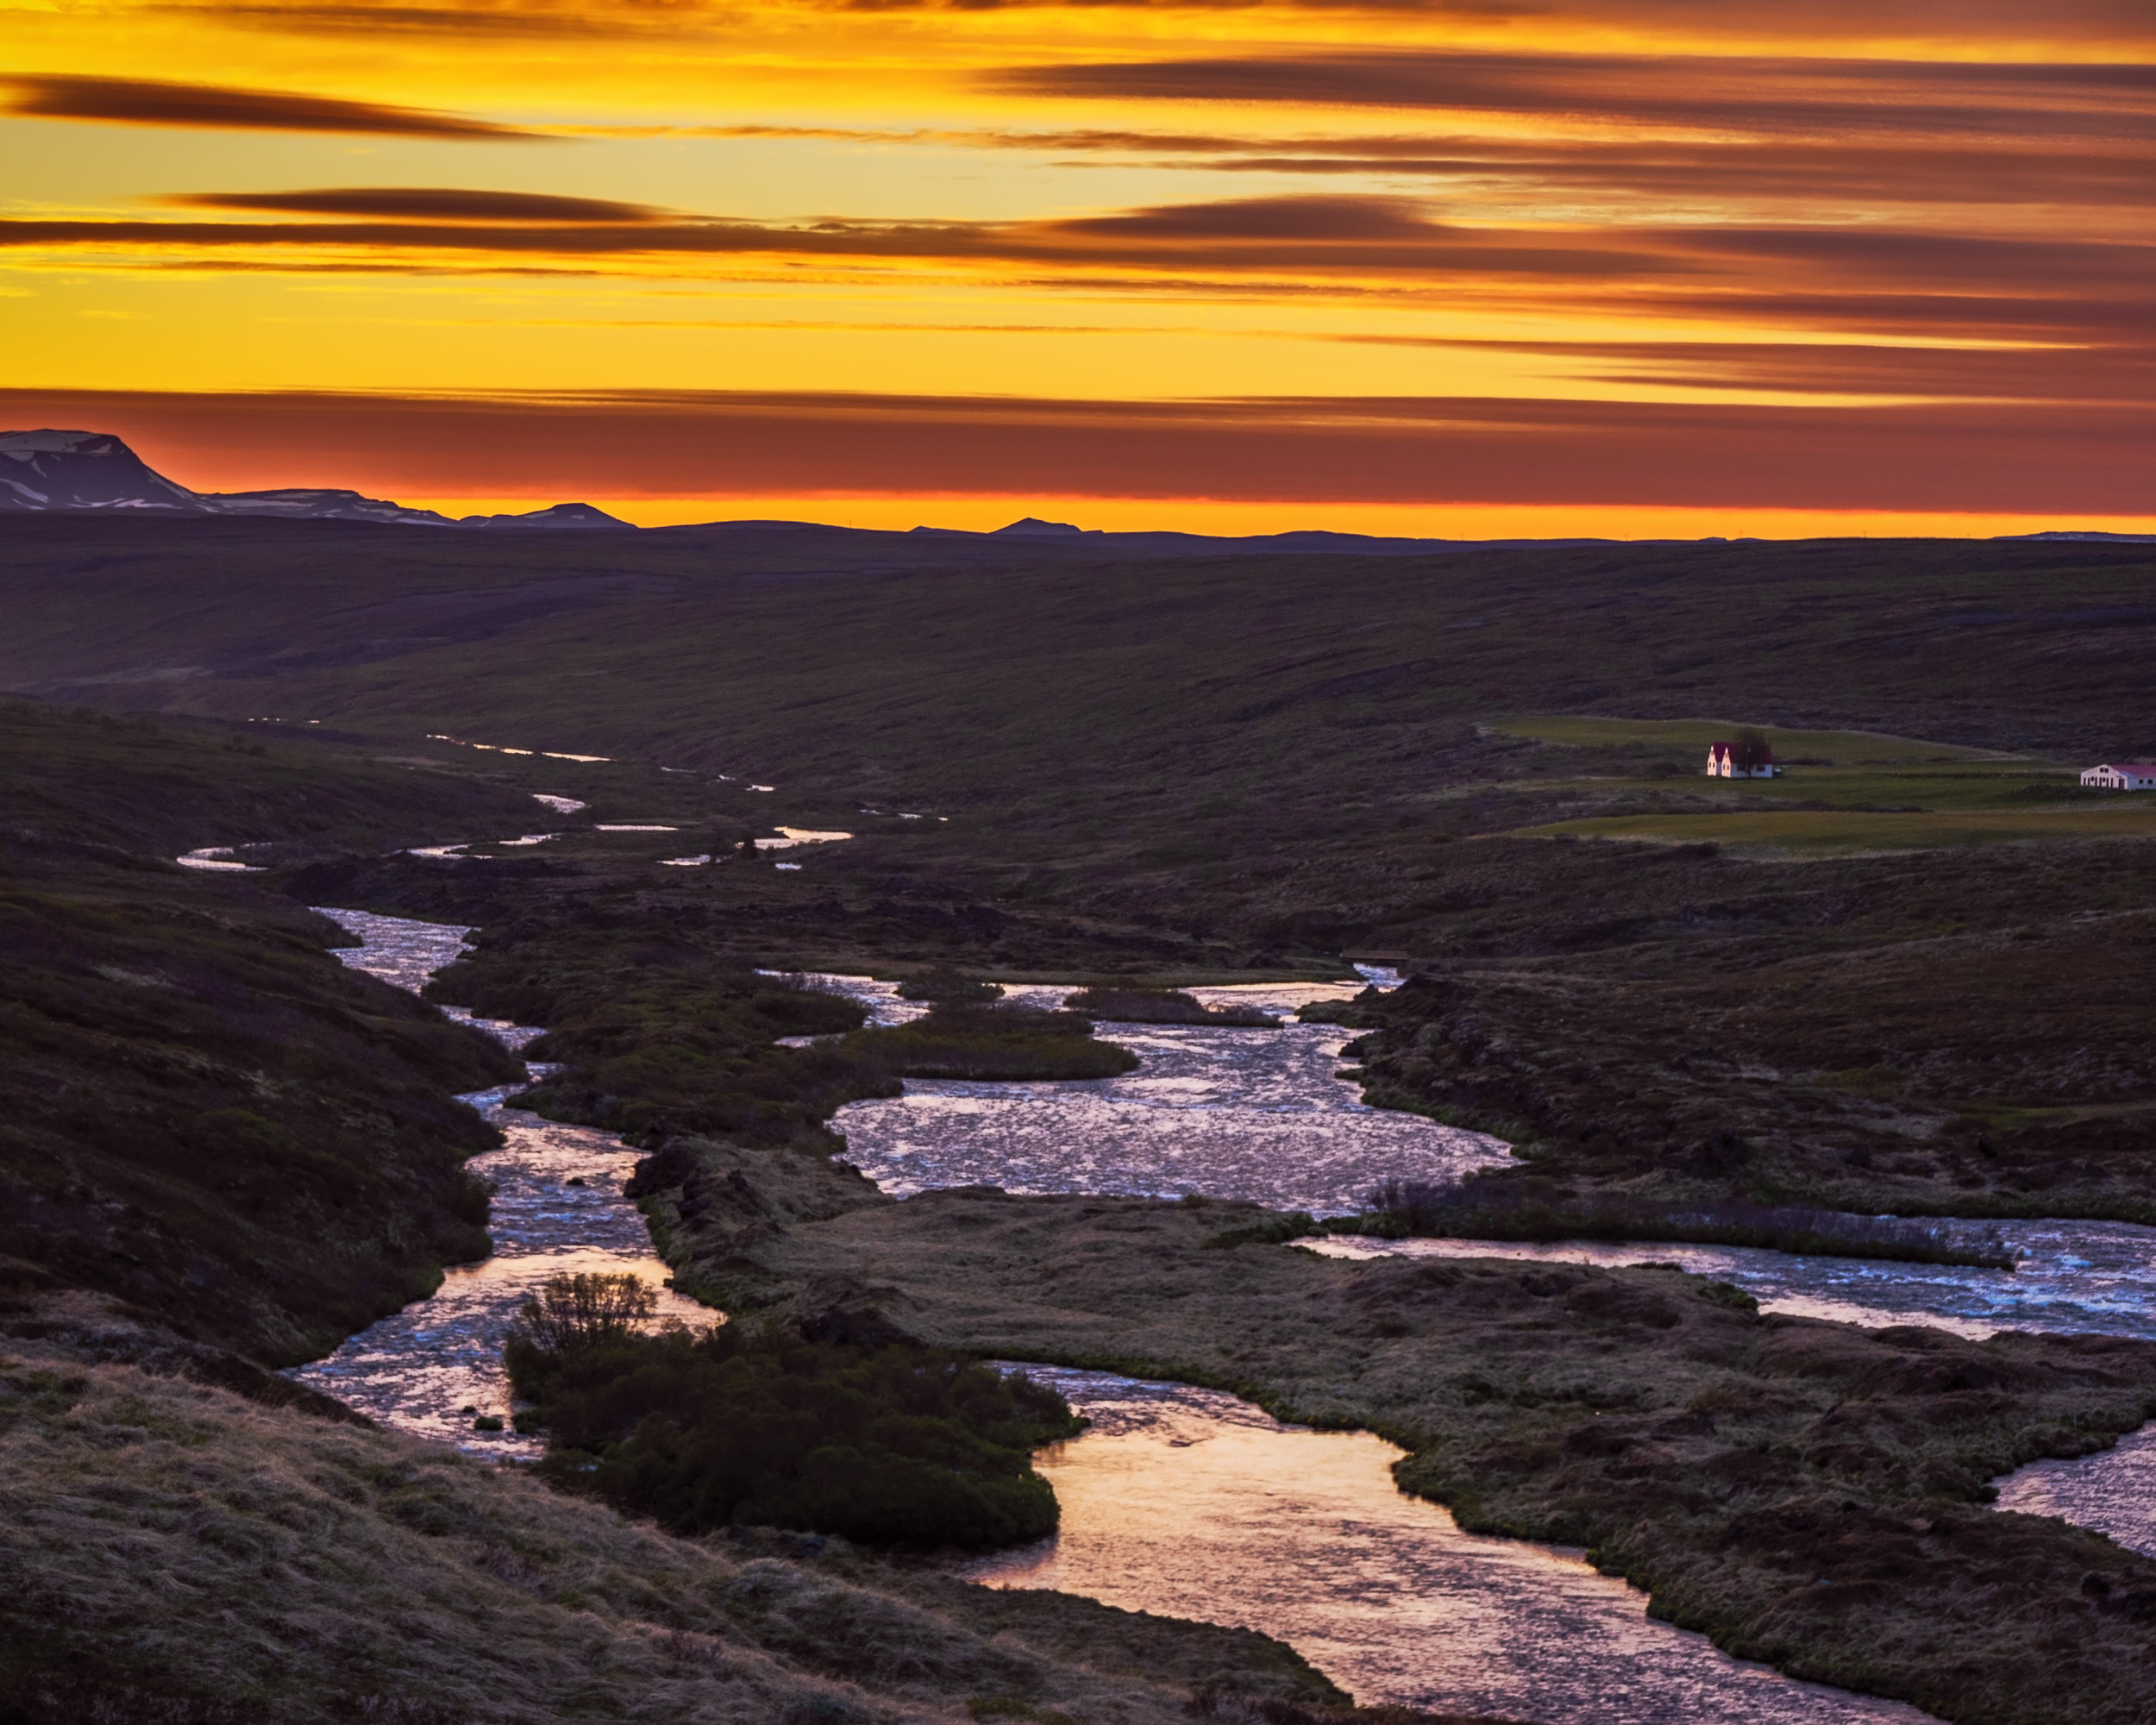 A river near Myvatan shows a nice glow after the sun had set